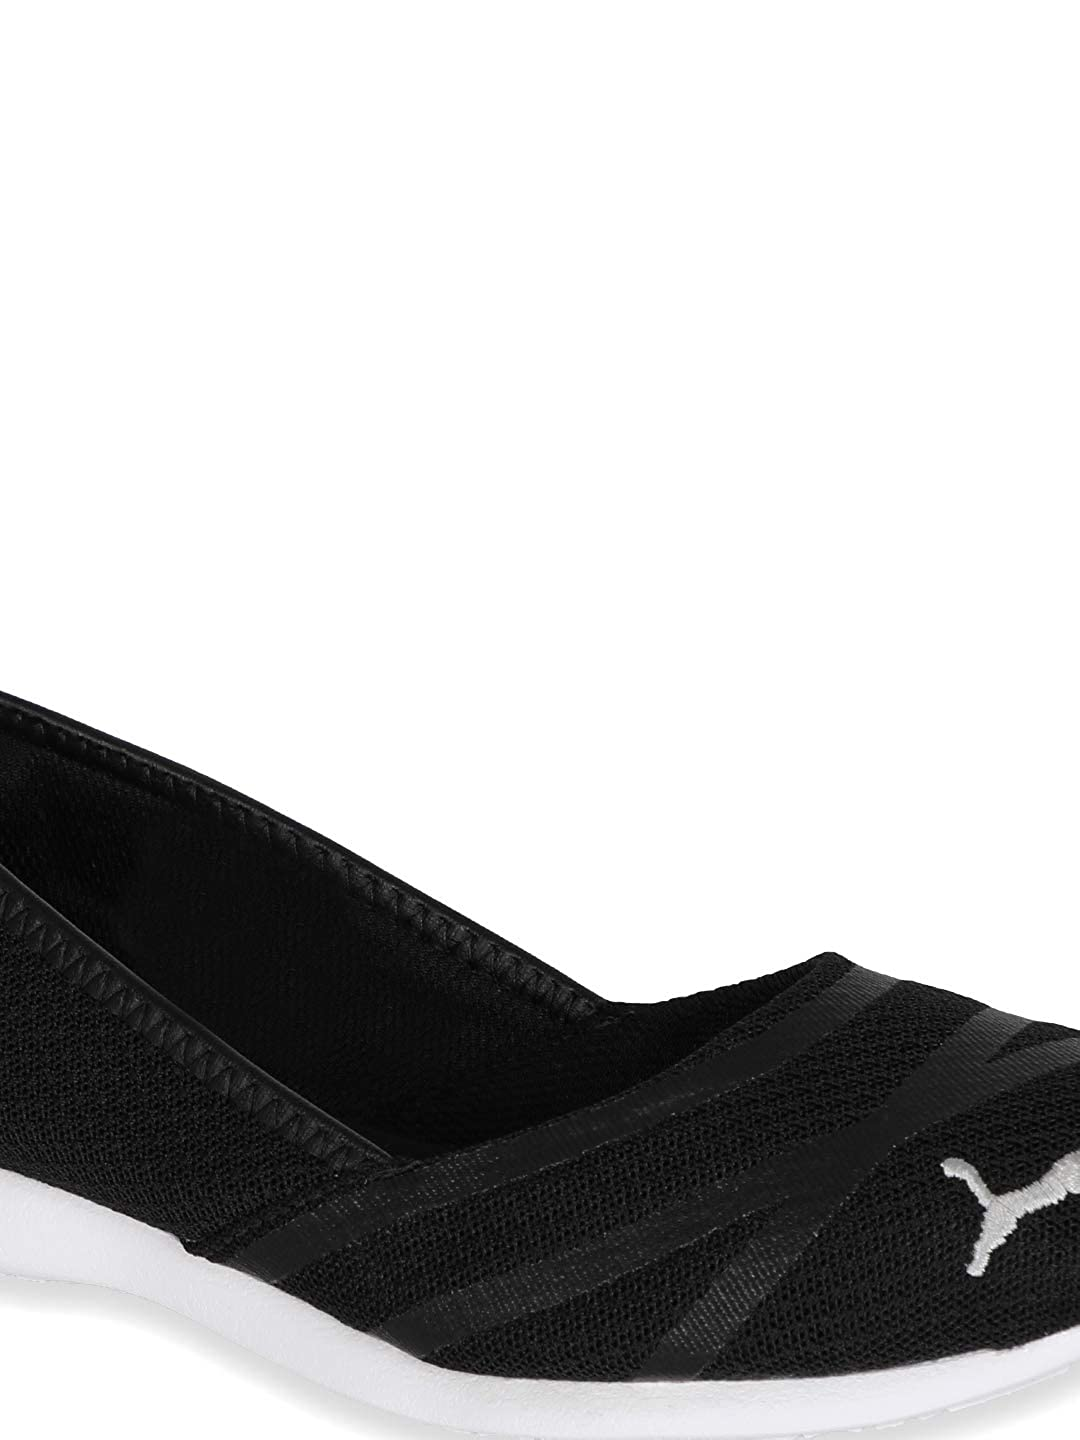 7ccbc0a5679 Puma Women s Vega Ballet Sweet Idp Black-Pu Flats-4 UK India (37 EU)  (36778002)  Buy Online at Low Prices in India - Amazon.in